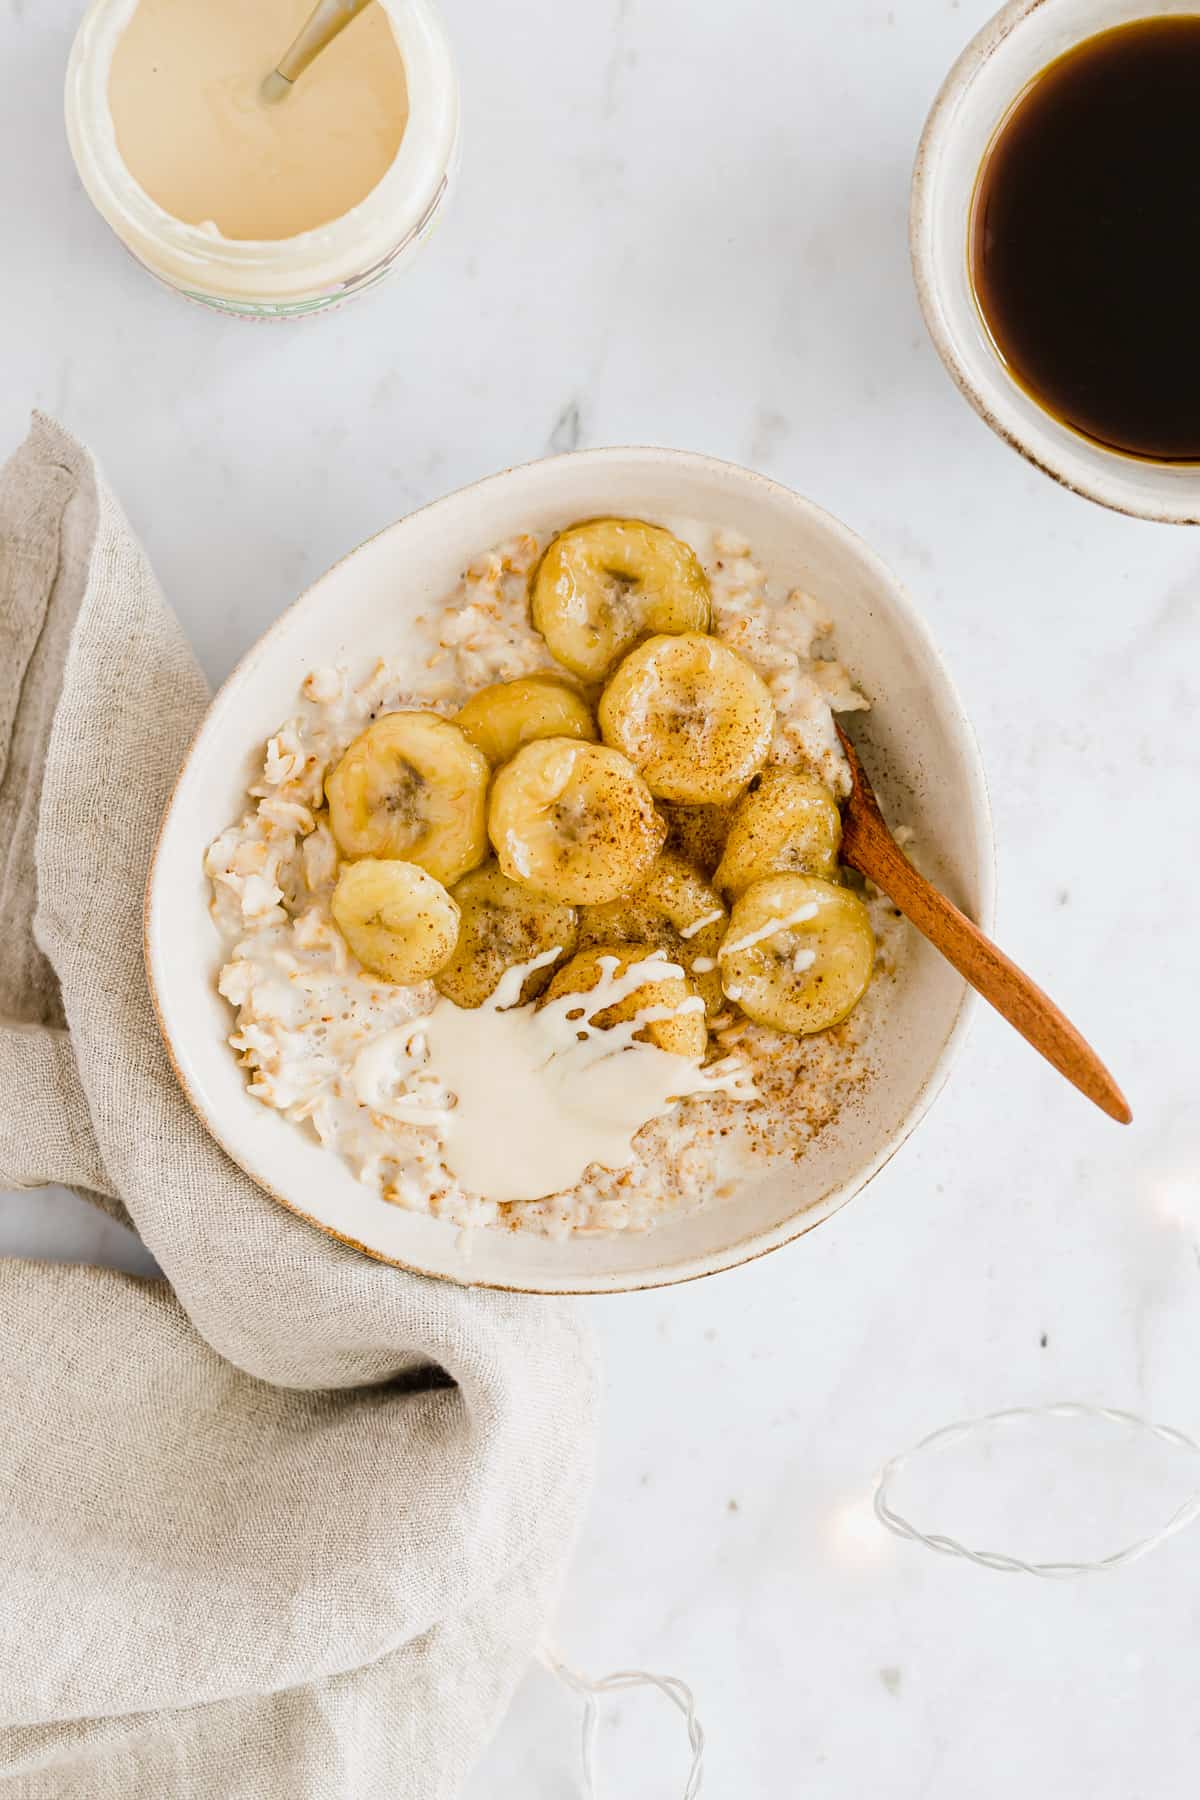 homemade oatmeal with banana and almond butter